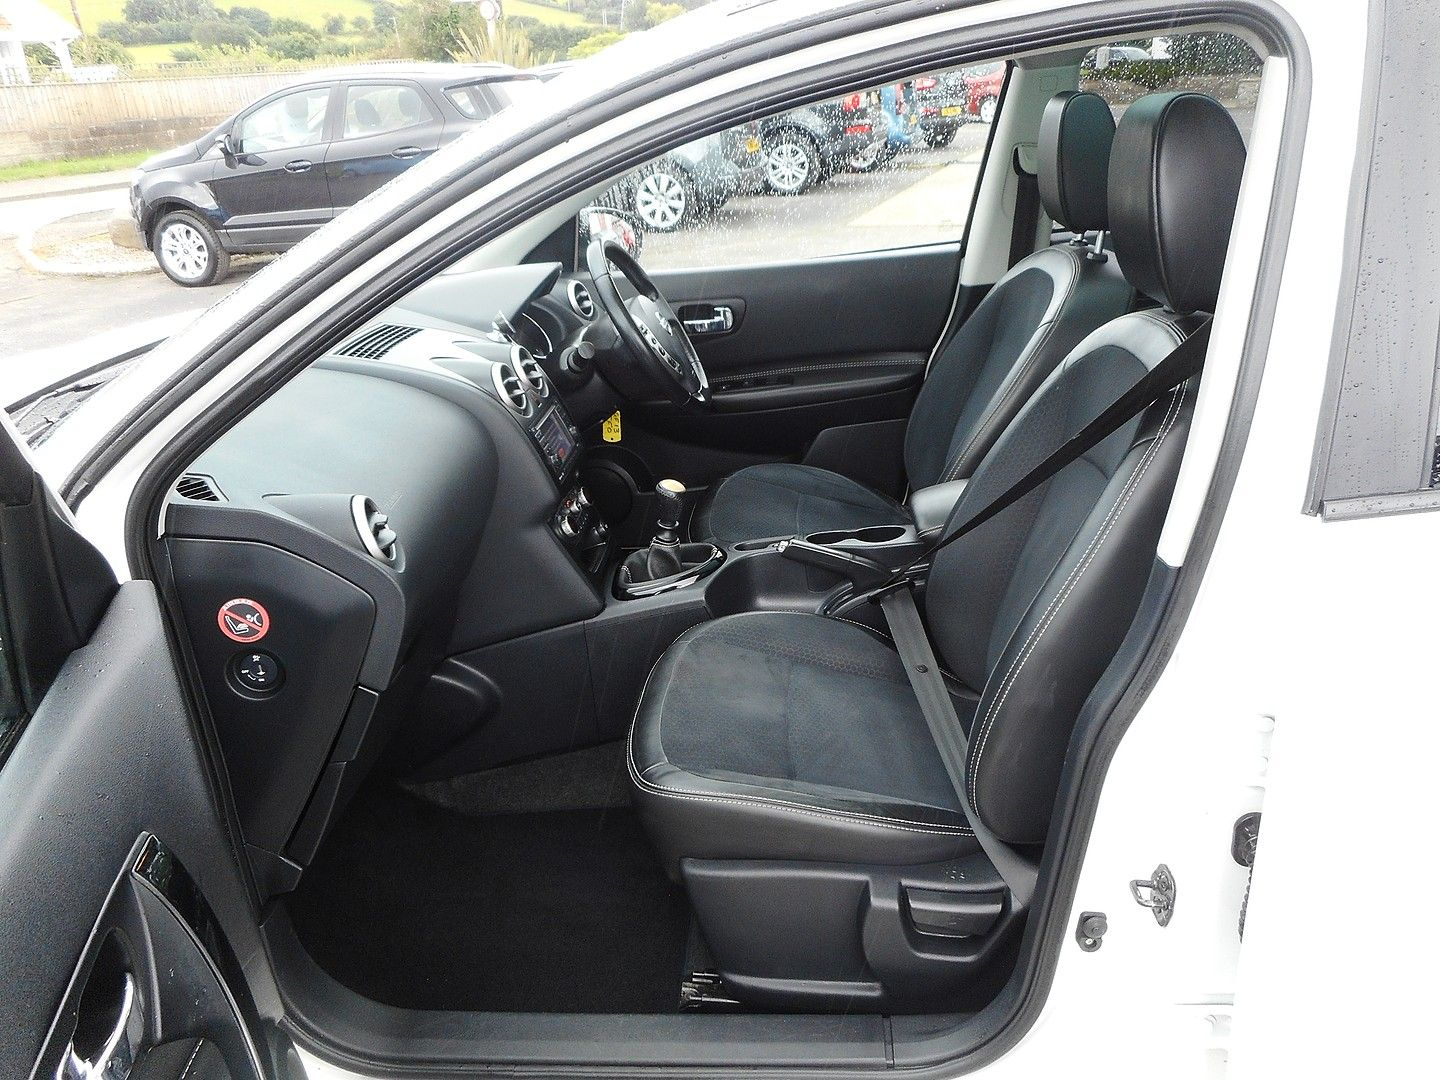 NISSAN QASHQAI 360 1.5 dCi 7 SEATER (2013) - Picture 9